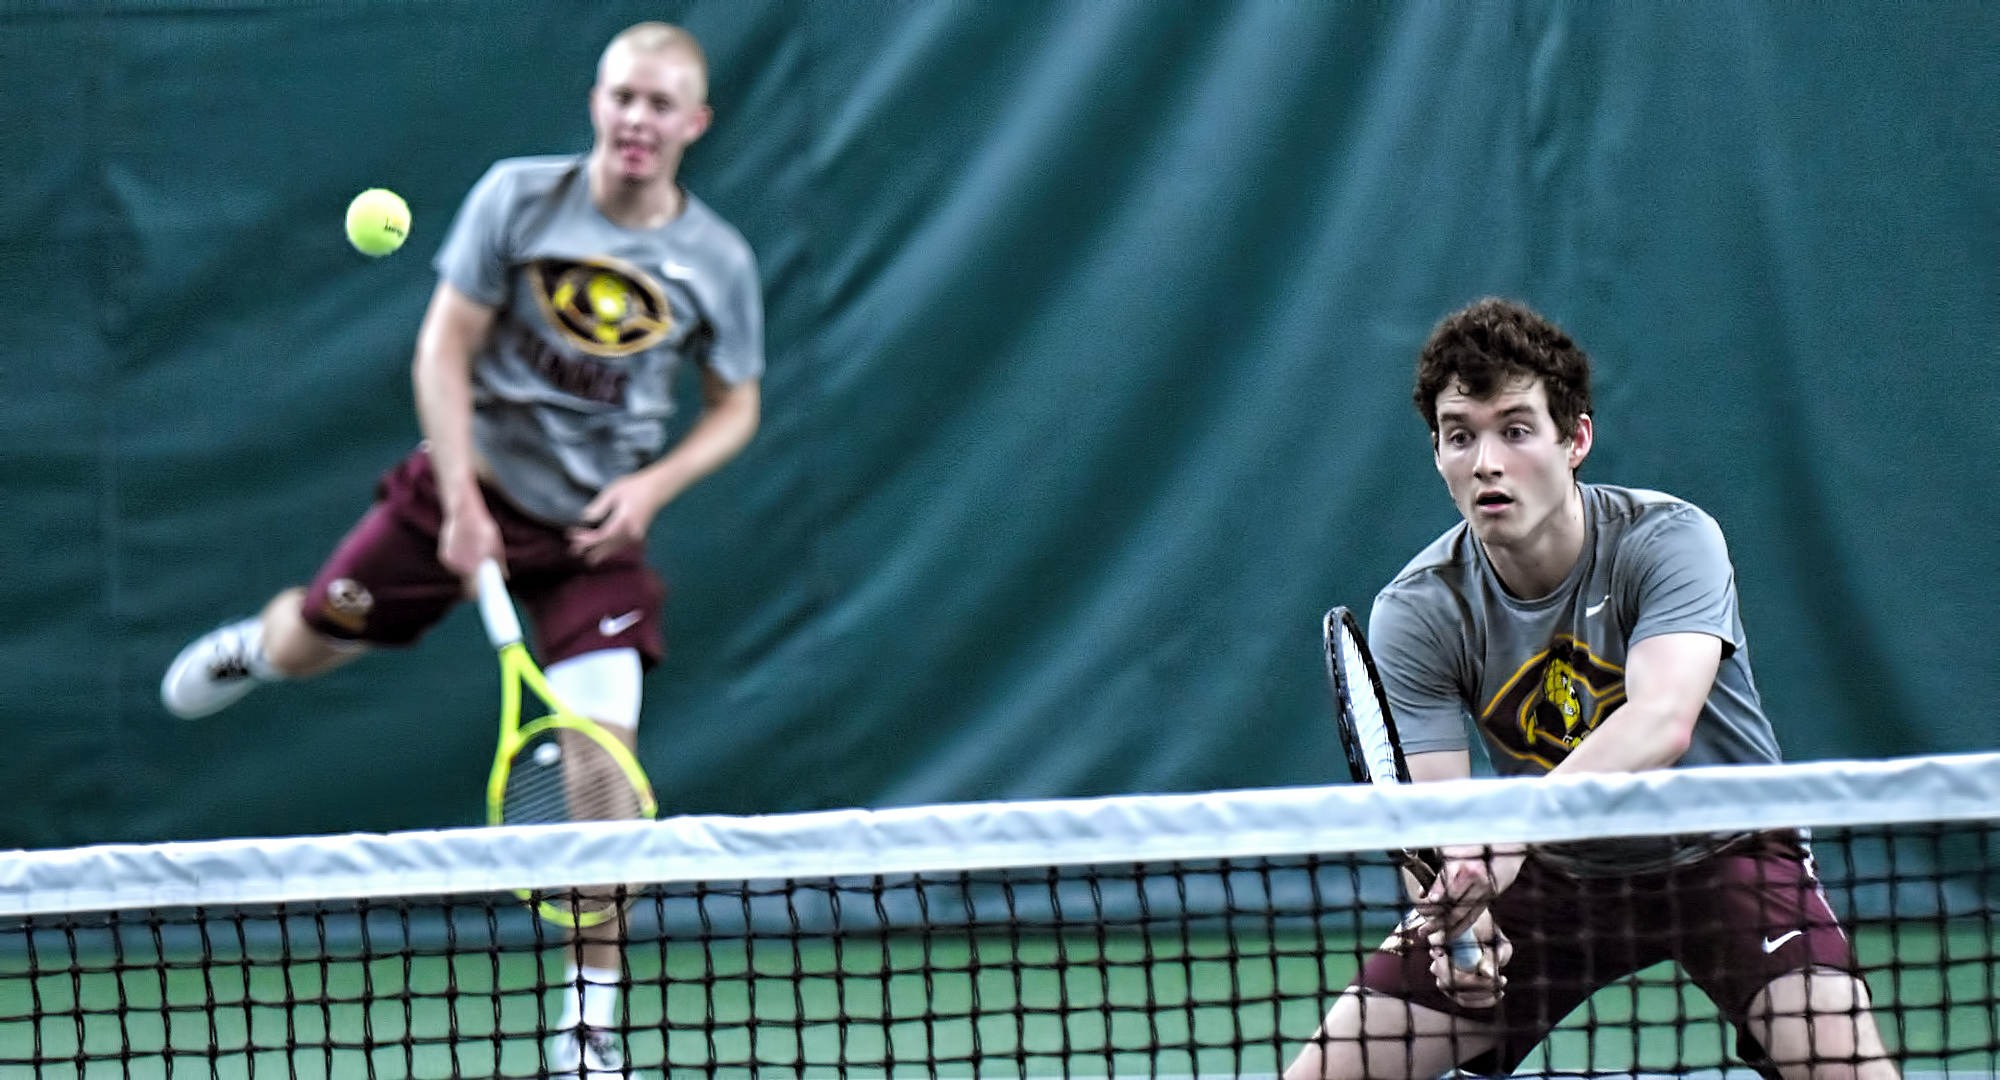 Jared Saue makes the serve and doubles partner Erik Porter waits for the return in their match at No.1 doubles. The tandem won 8-6 in their match with St. John's.